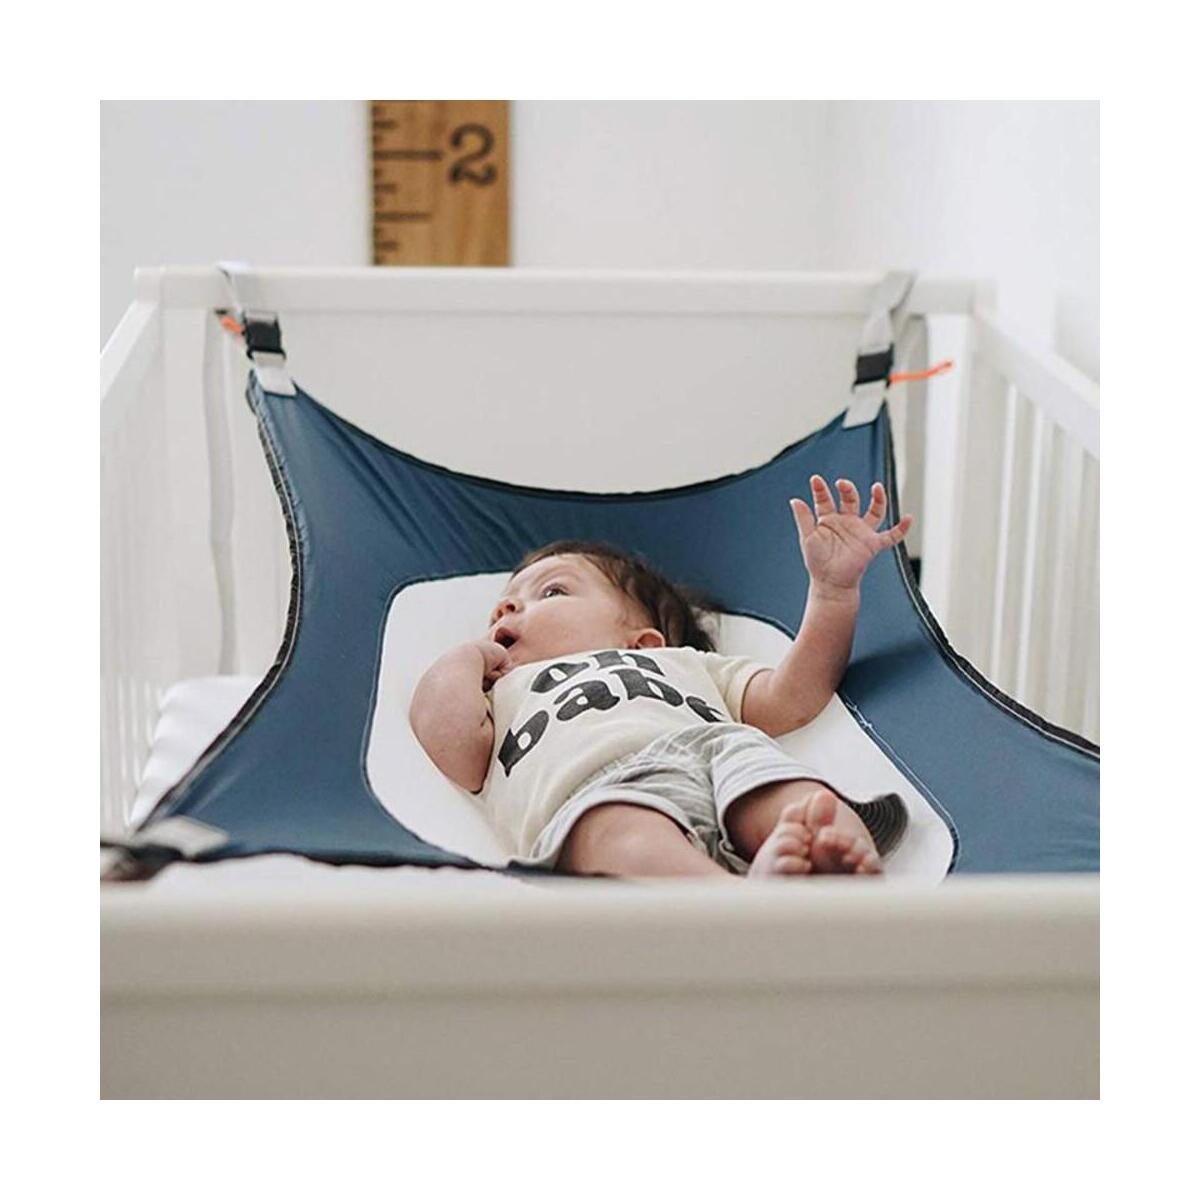 Newest Design Multi-function Detachable  Adjustable Sleeping Bed New born Baby Hanging Hammock For Crib